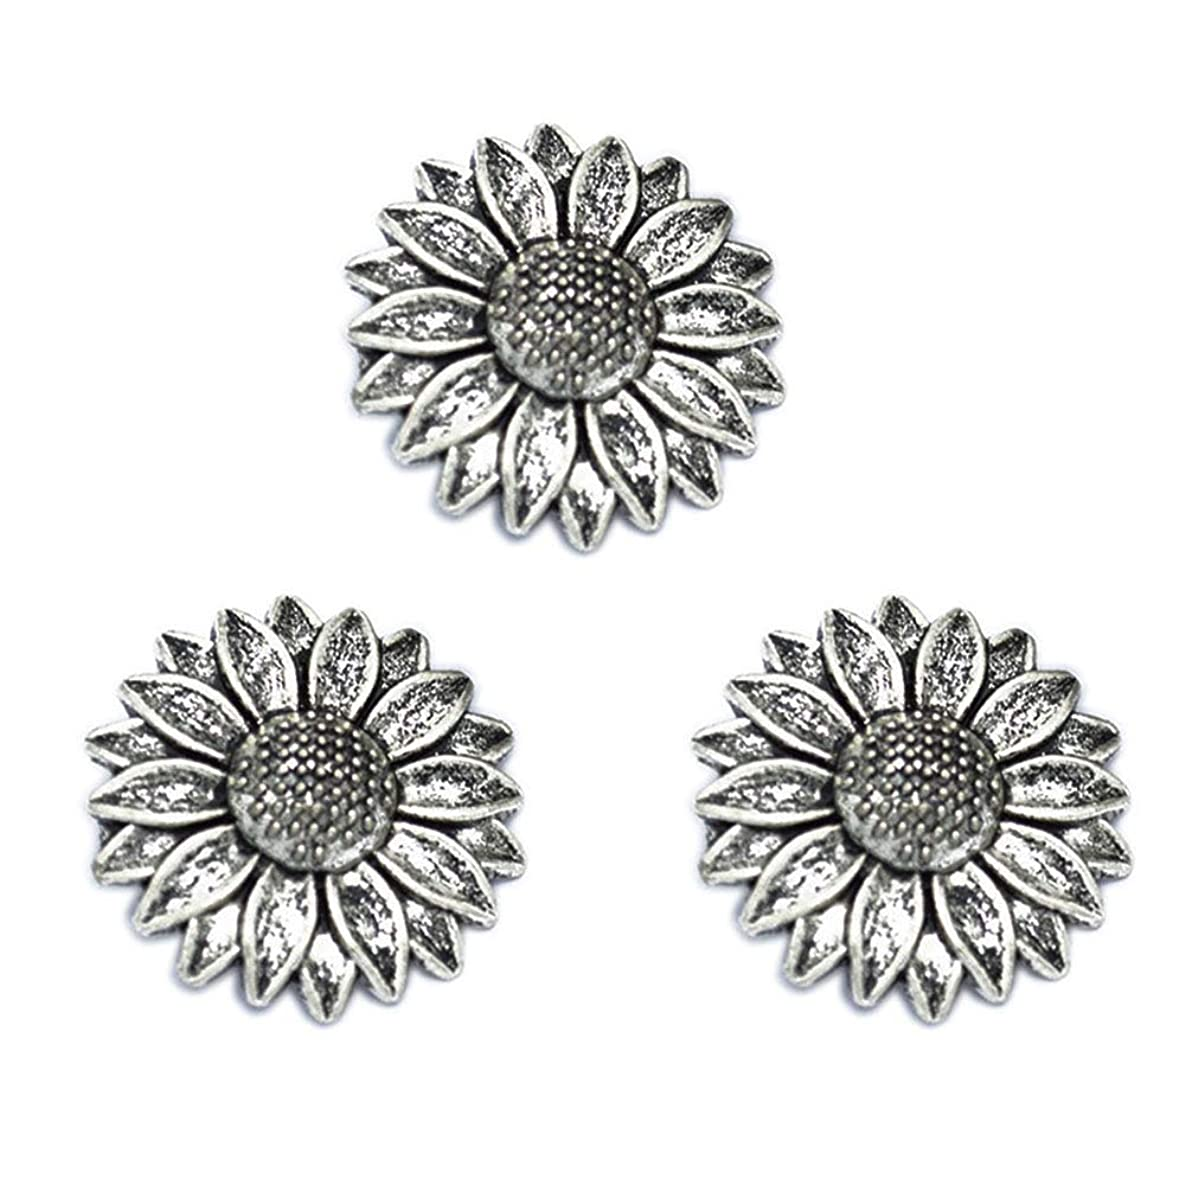 10pcs Vintage Antique Silver Alloy Sunflower Charms Pendant Jewelry Findings for Jewelry Making Necklace Bracelet DIY 39x39mm (10pcs Silver)